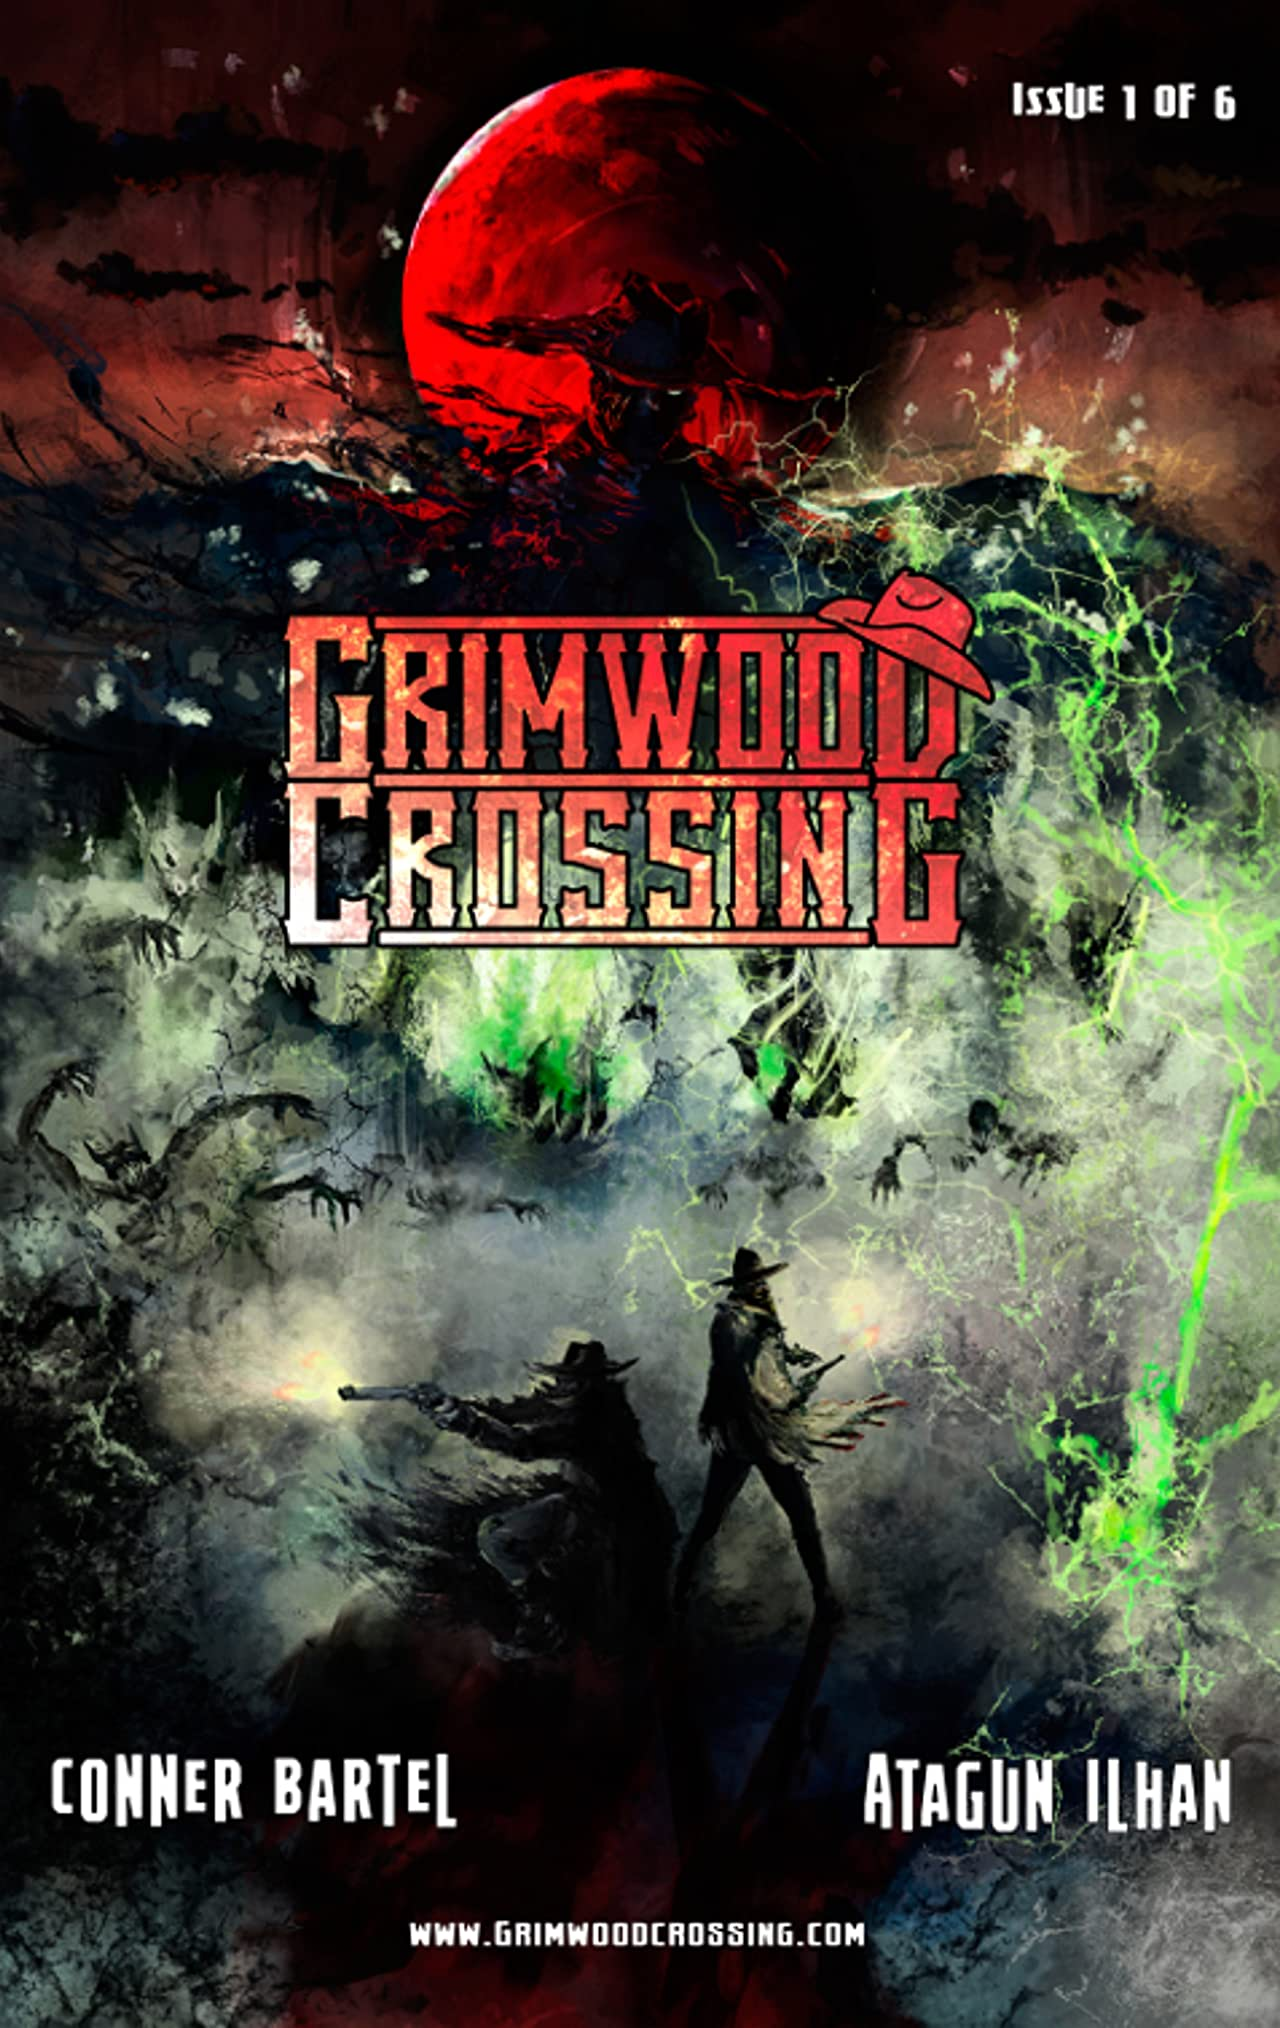 Grimwood Crossing #1